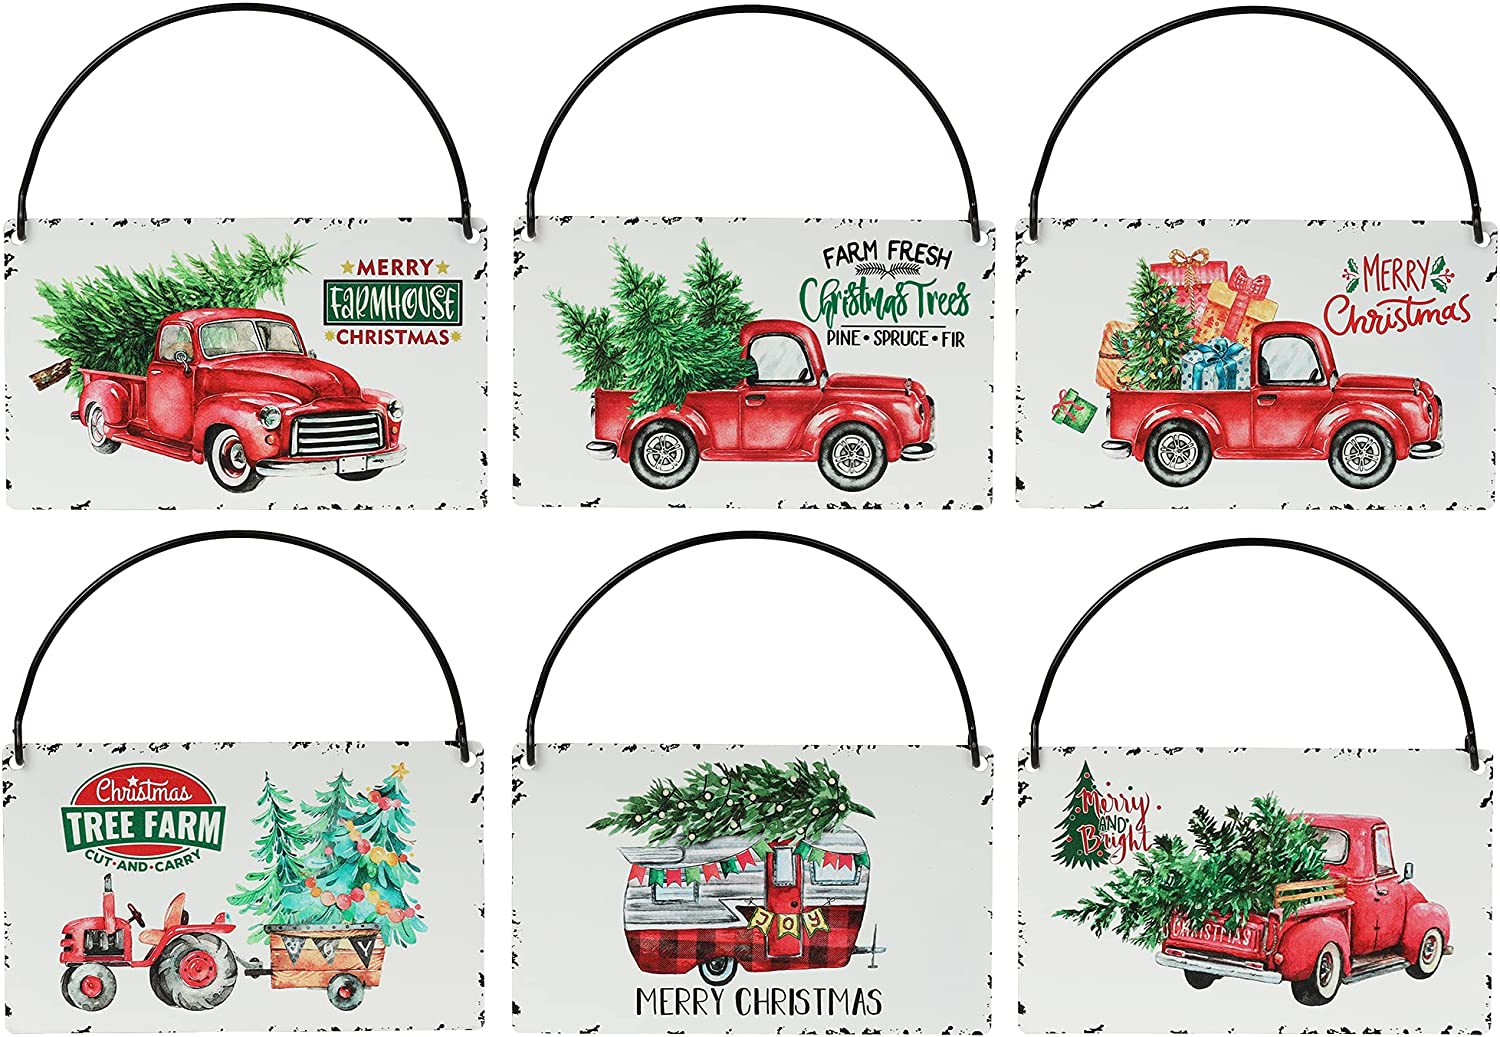 Rustic Red Truck Christmas Ornaments Set of 6,Farmhouse Enamel Hanging Signs for Christmas Tree Decorations Home Holiday Decor